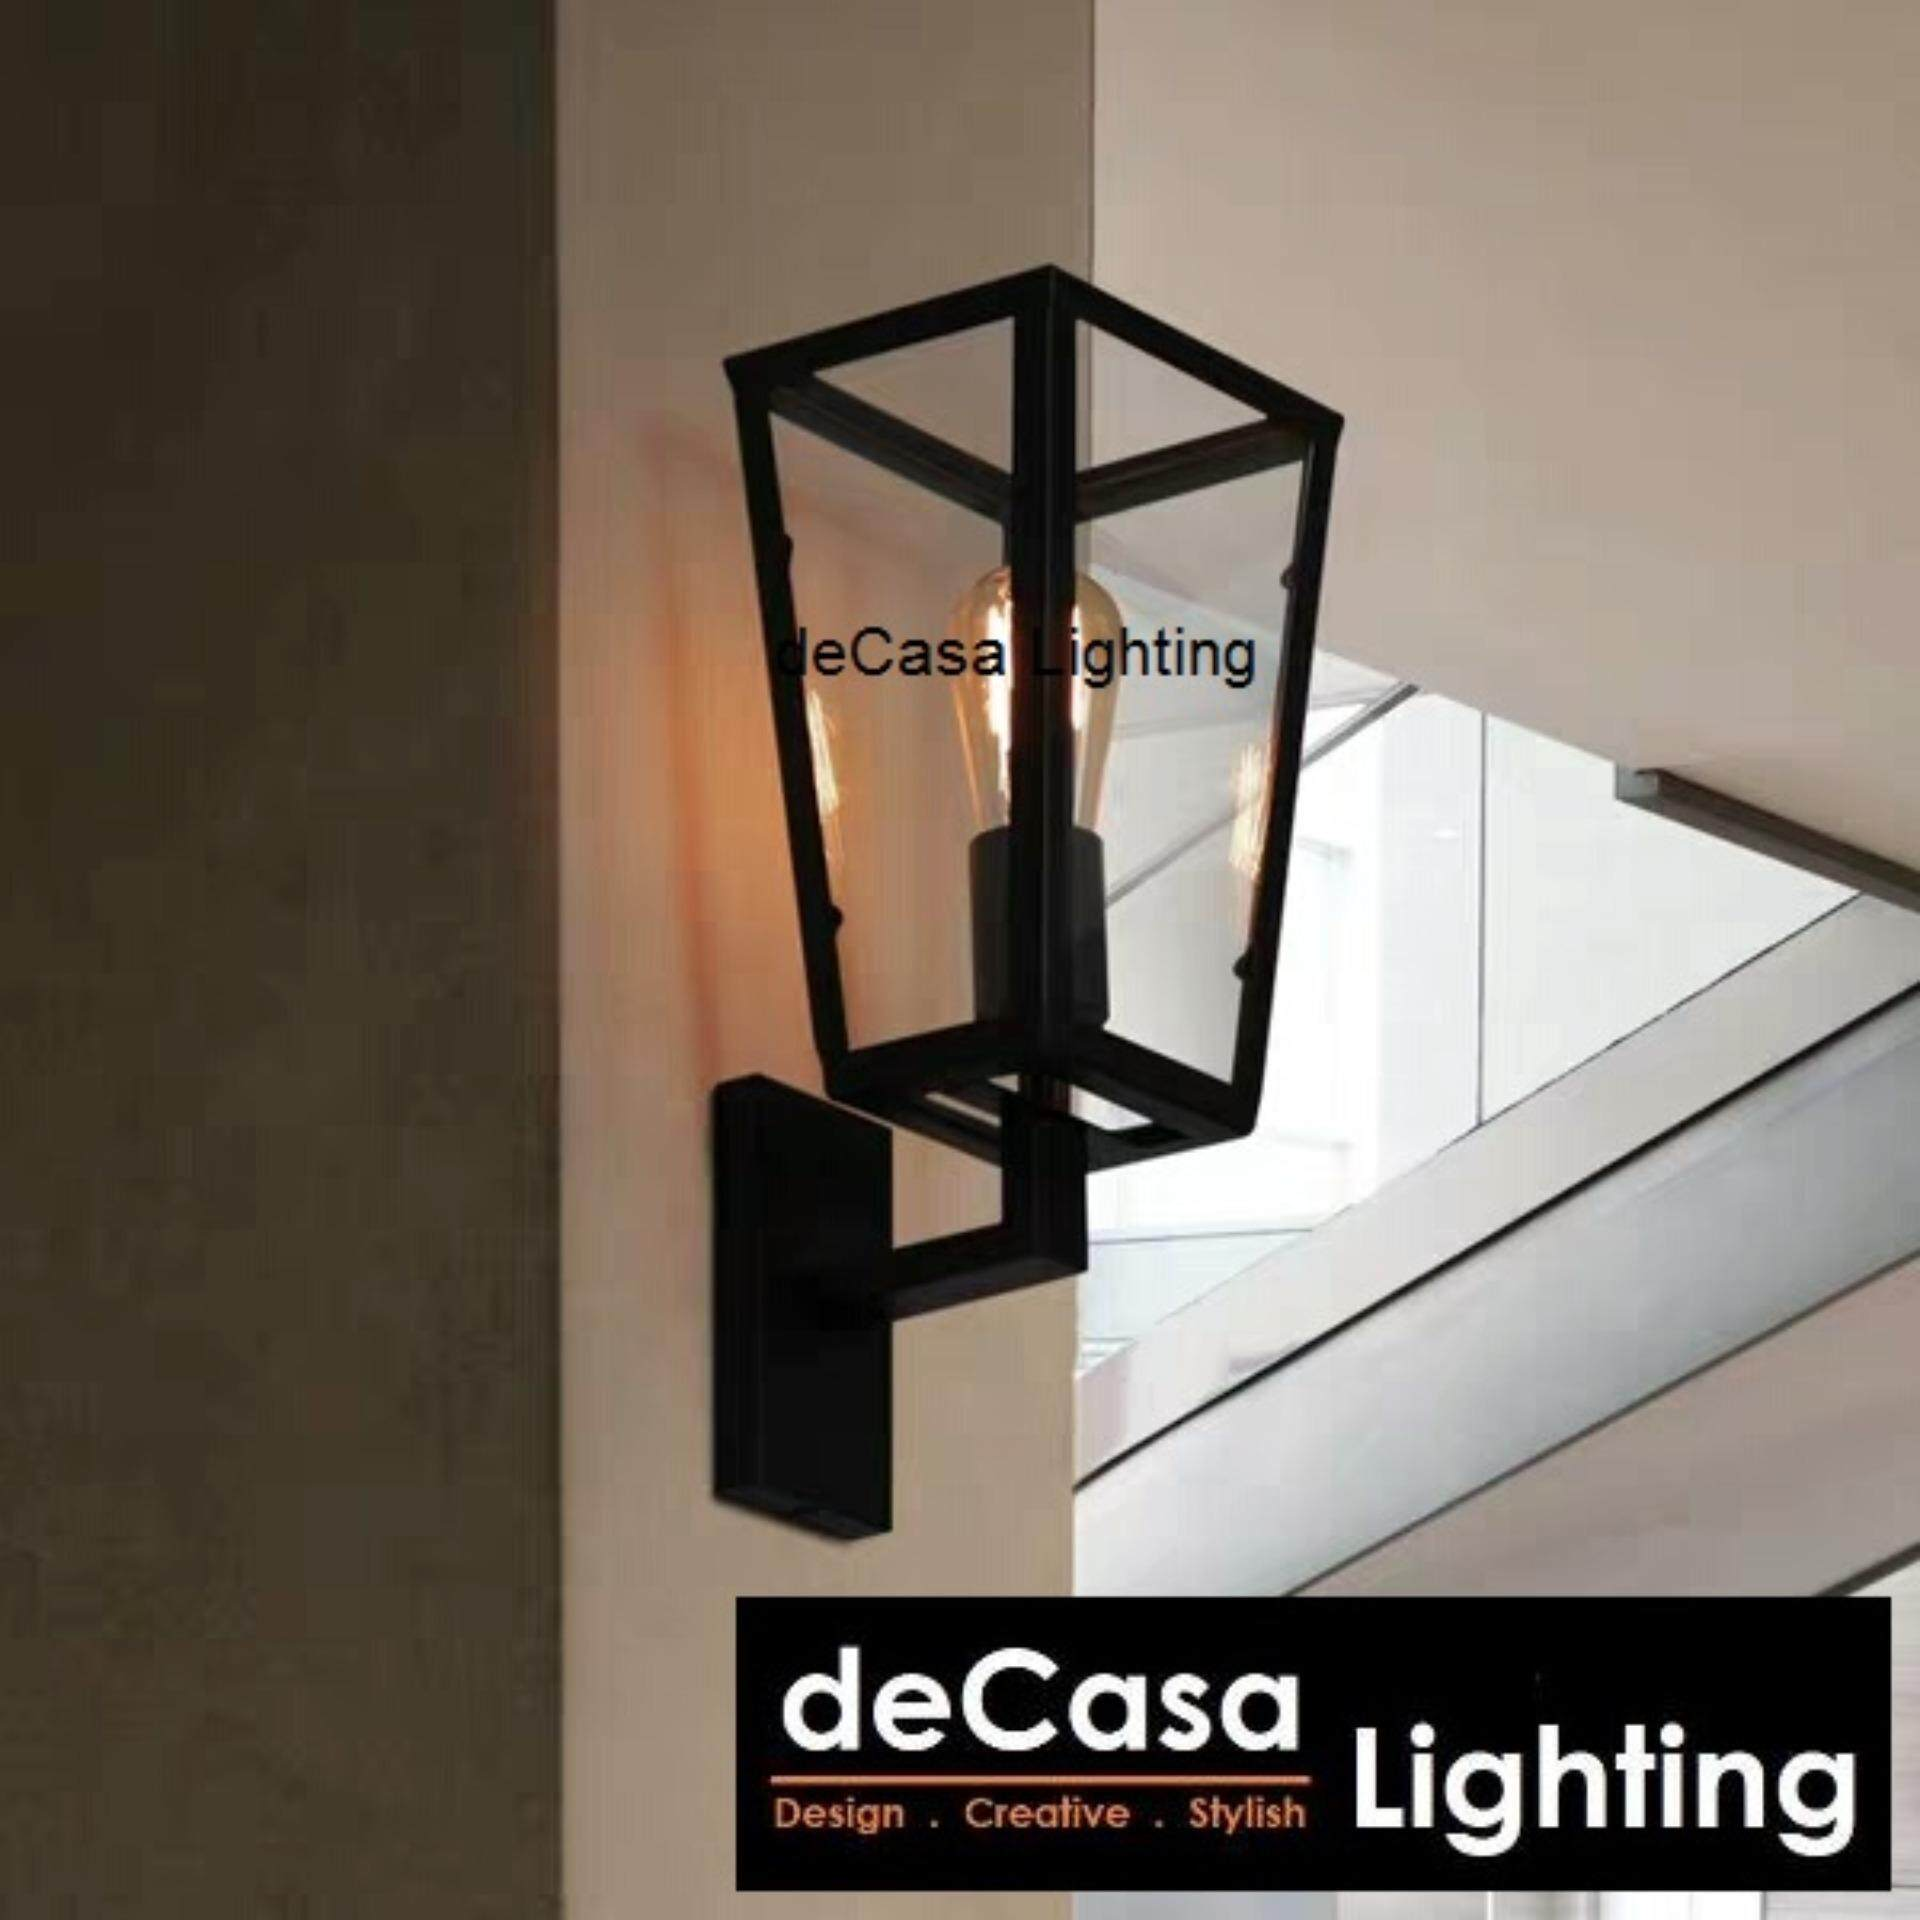 Decasa Lighting Best Seller Decorative Wall Lights (Black) DECASA WALL LIGHT (LY-RQY-001)